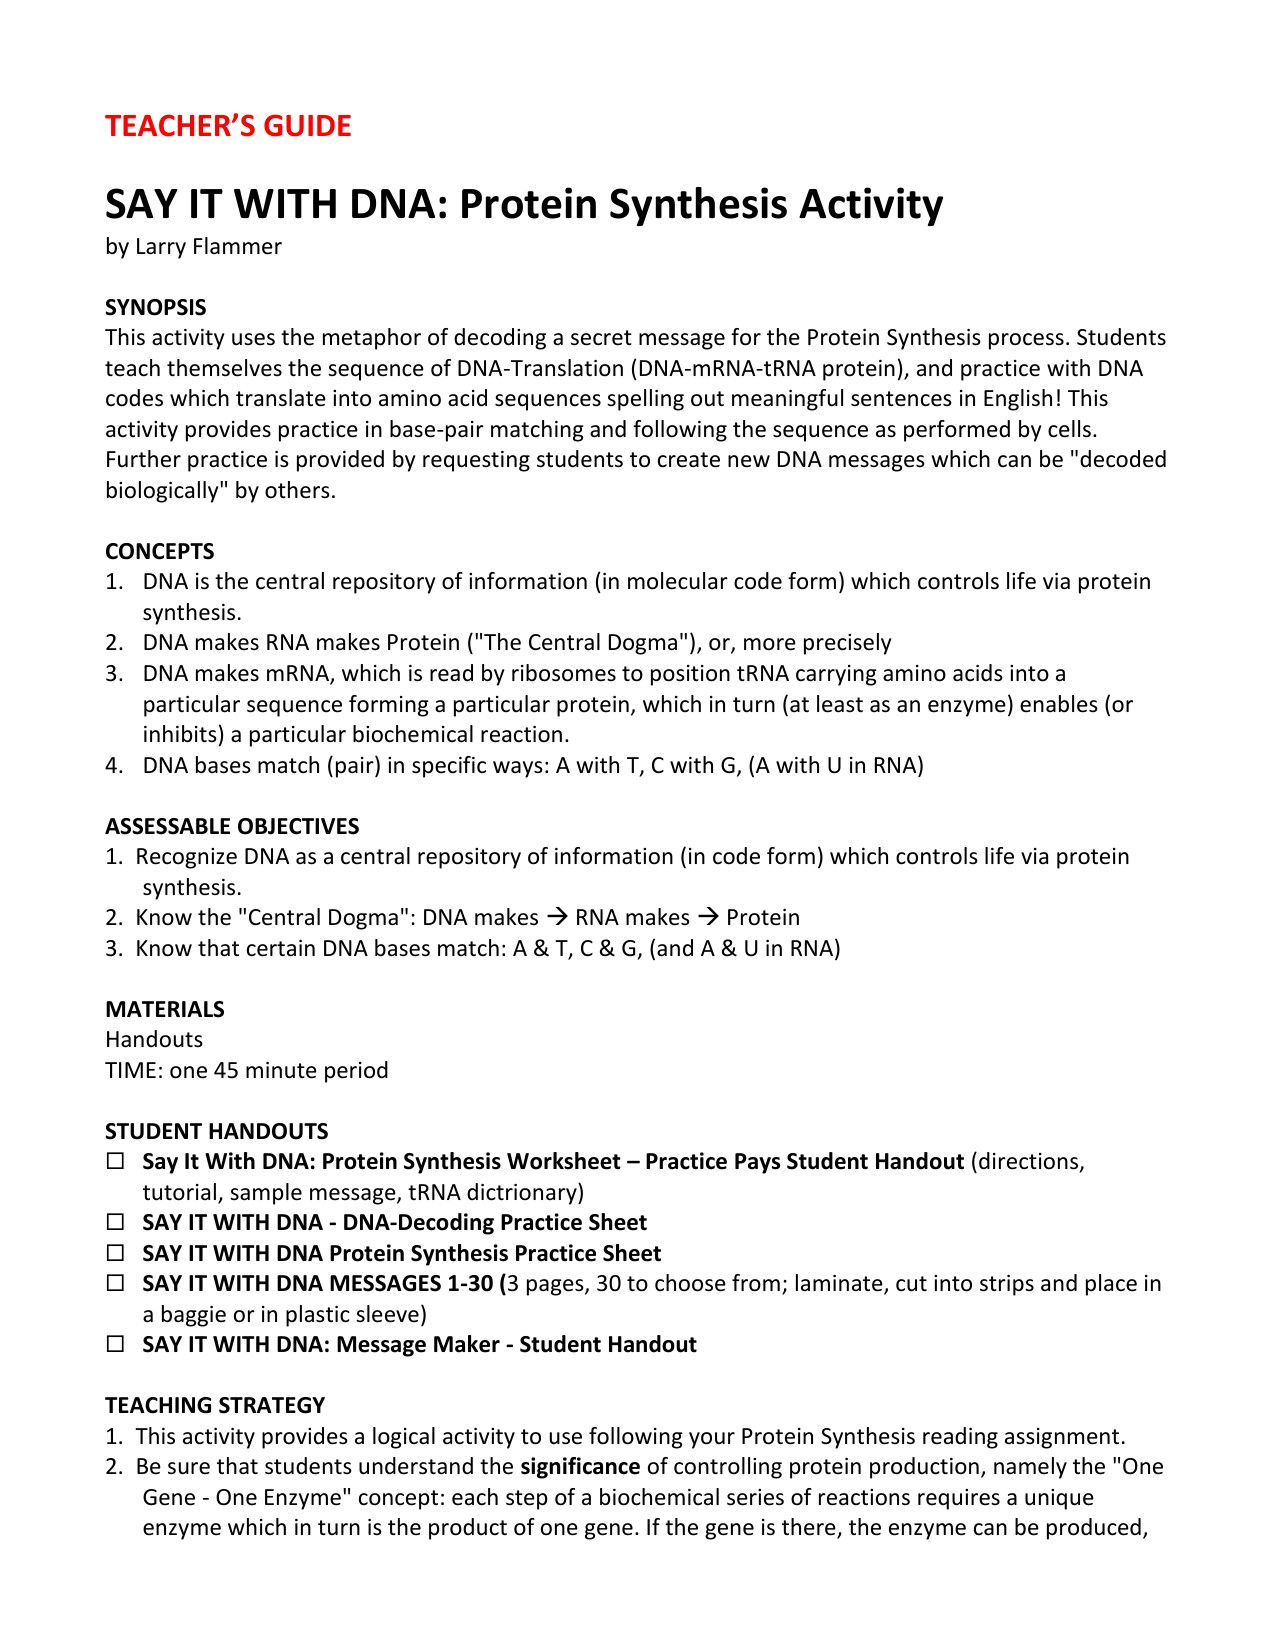 Prime Dna And Protein Synthesis Worksheet Answers